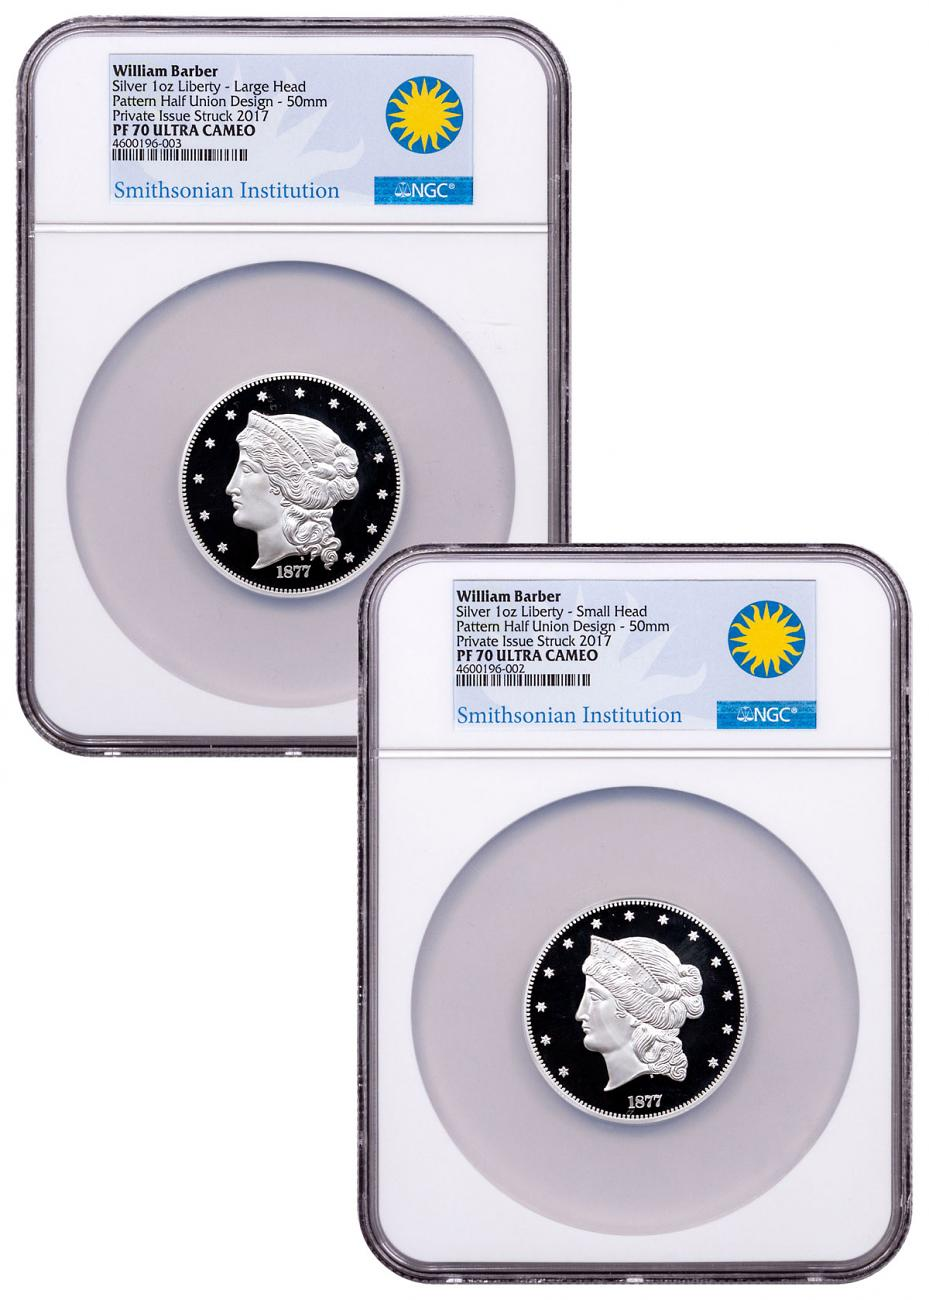 2-Medal Set - (2017) Smithsonian - William Barber 1877 $50 Half-Union Pattern 1 oz Silver Proof Medal NGC PF70 UC Exclusive Smithsonian Label